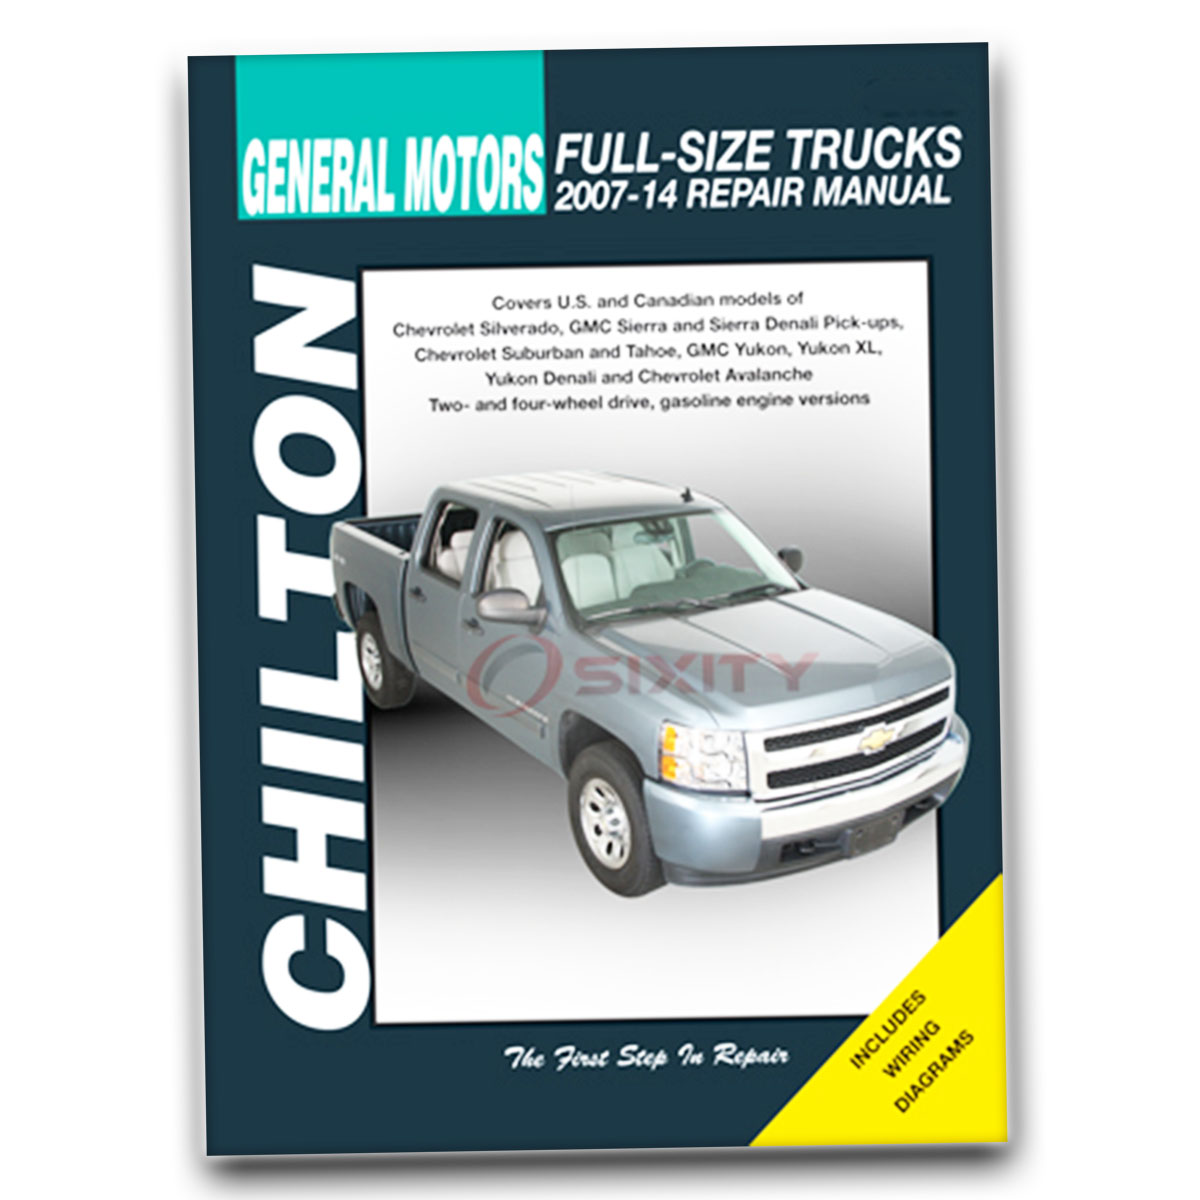 chilton repair manual for chevy suburban 1500 lt ltz z71 ls shop rh ebay  com 2002 Chevrolet Silverado Repair Manual Truck Manual